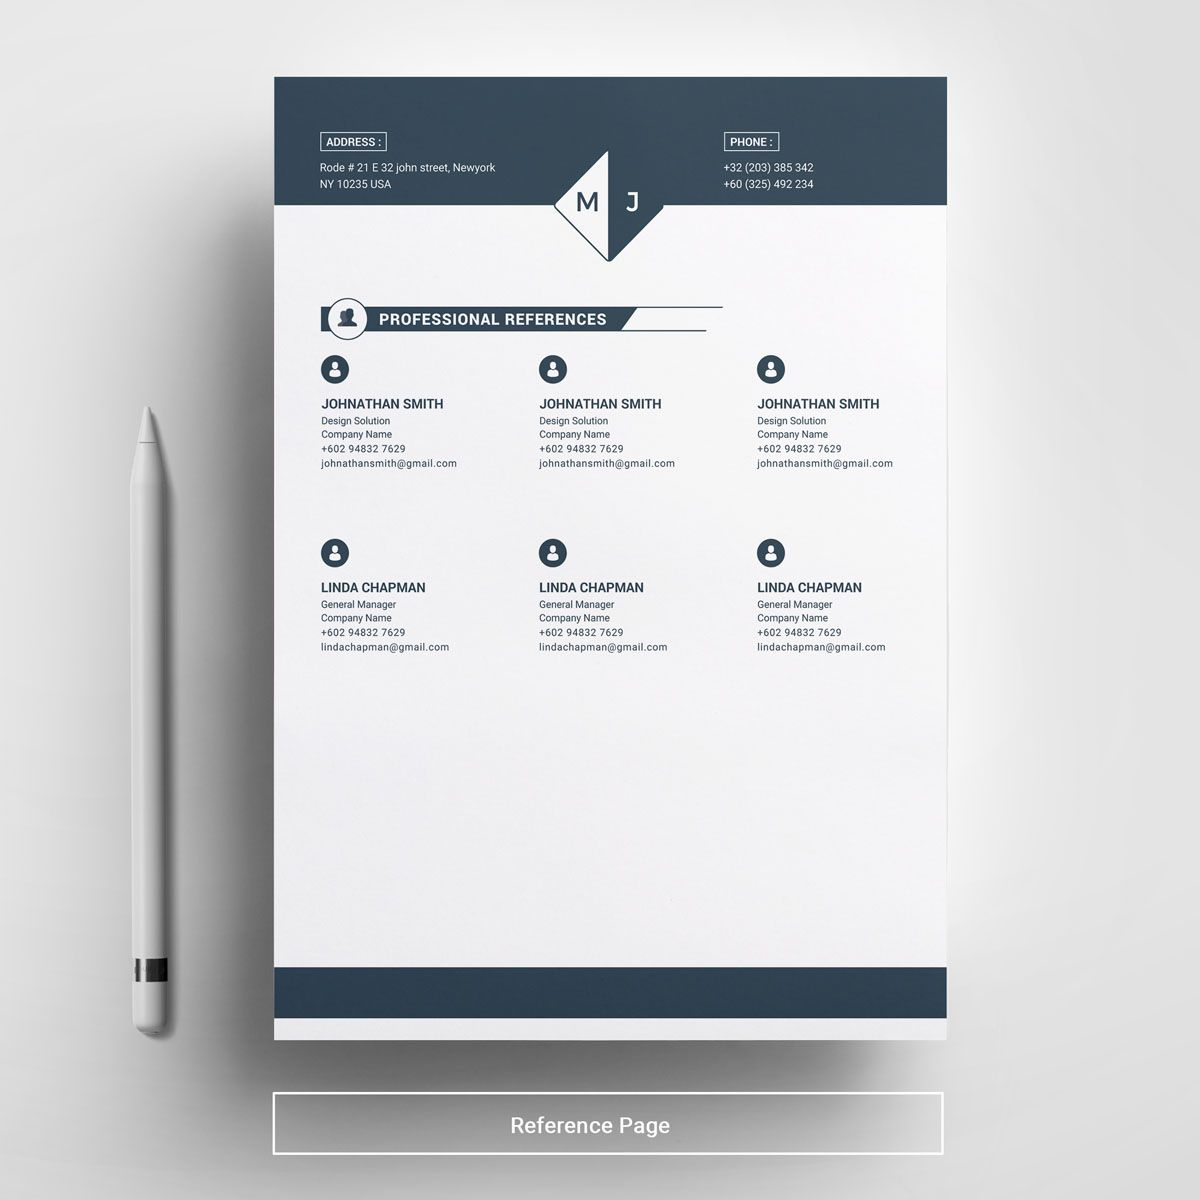 Michael Johnson Resume Template | Diy | Michael johnson ...